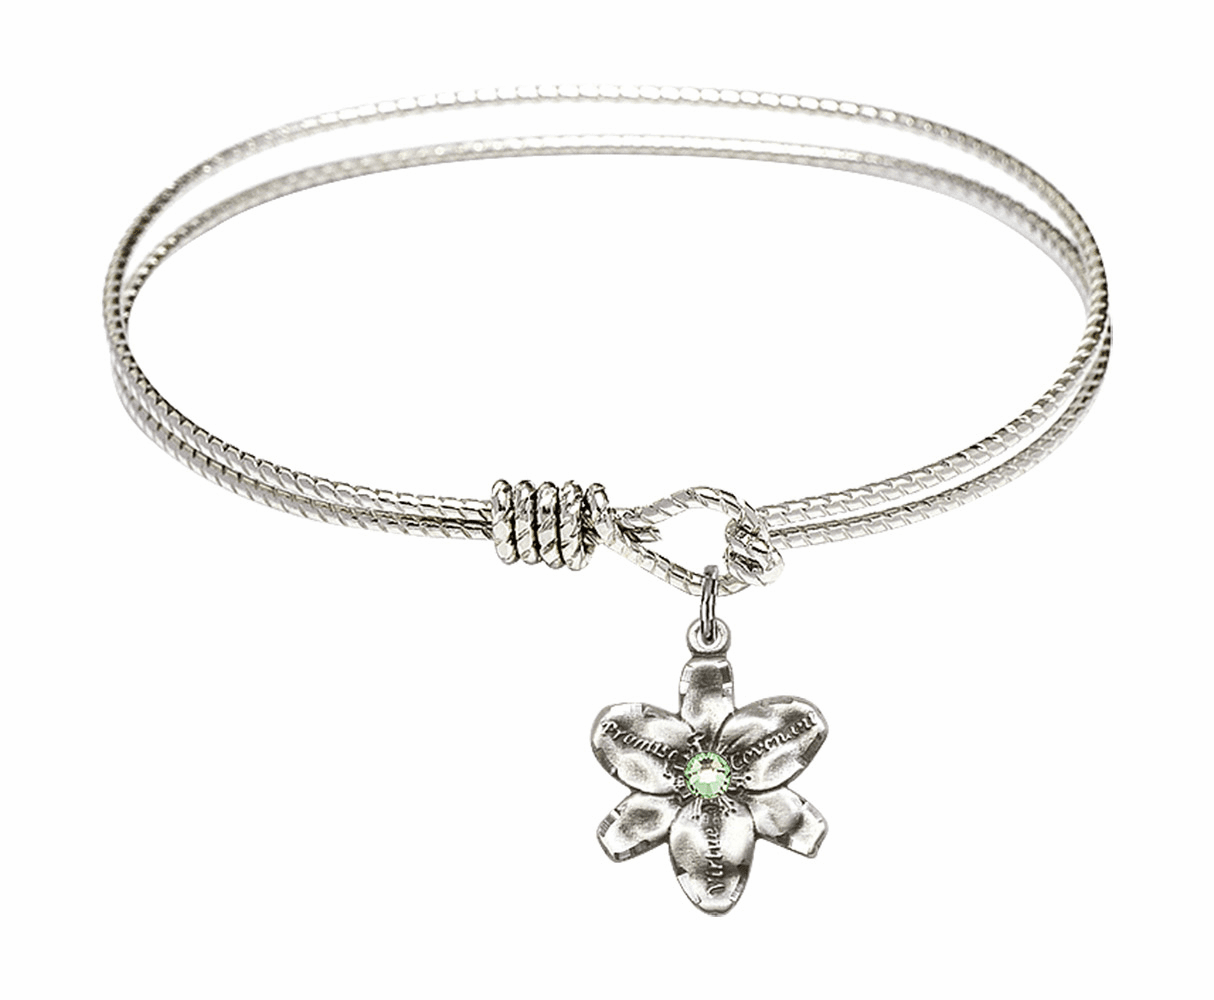 Textured Bangle Bracelet w/Peridot Flower Chastity Charm by Bliss Mfg